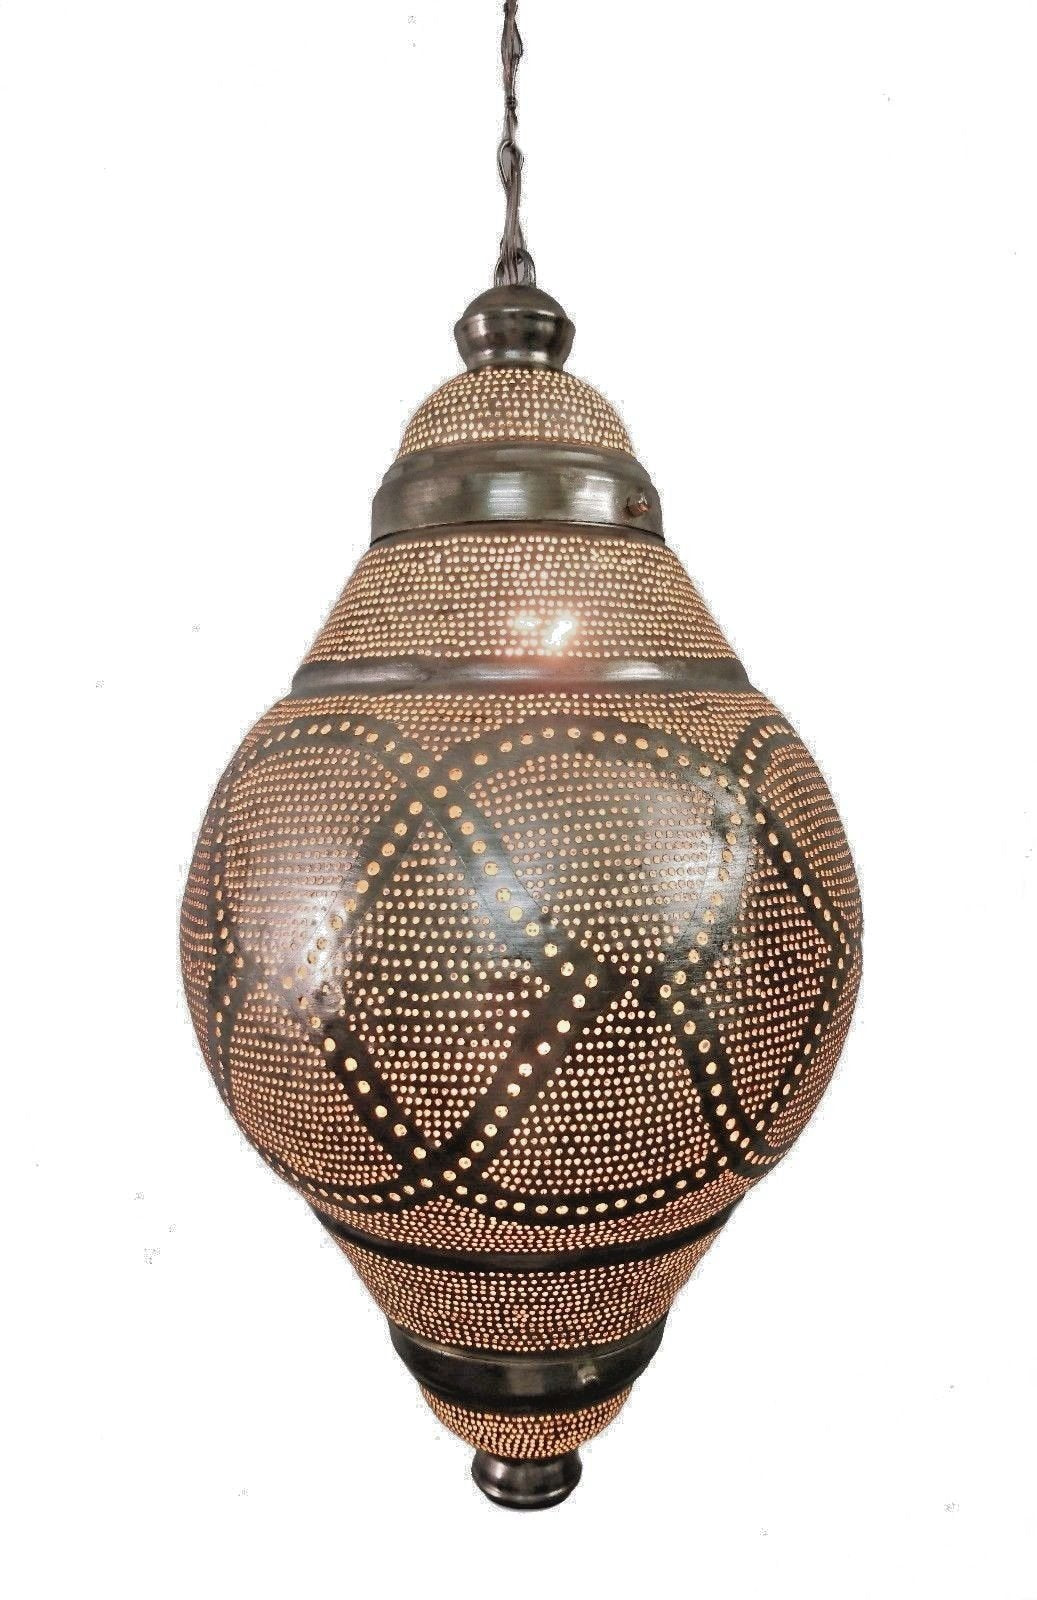 B265S Silver Plated Tin Mosaic Moroccan Home Decor Night Hanging Lamp